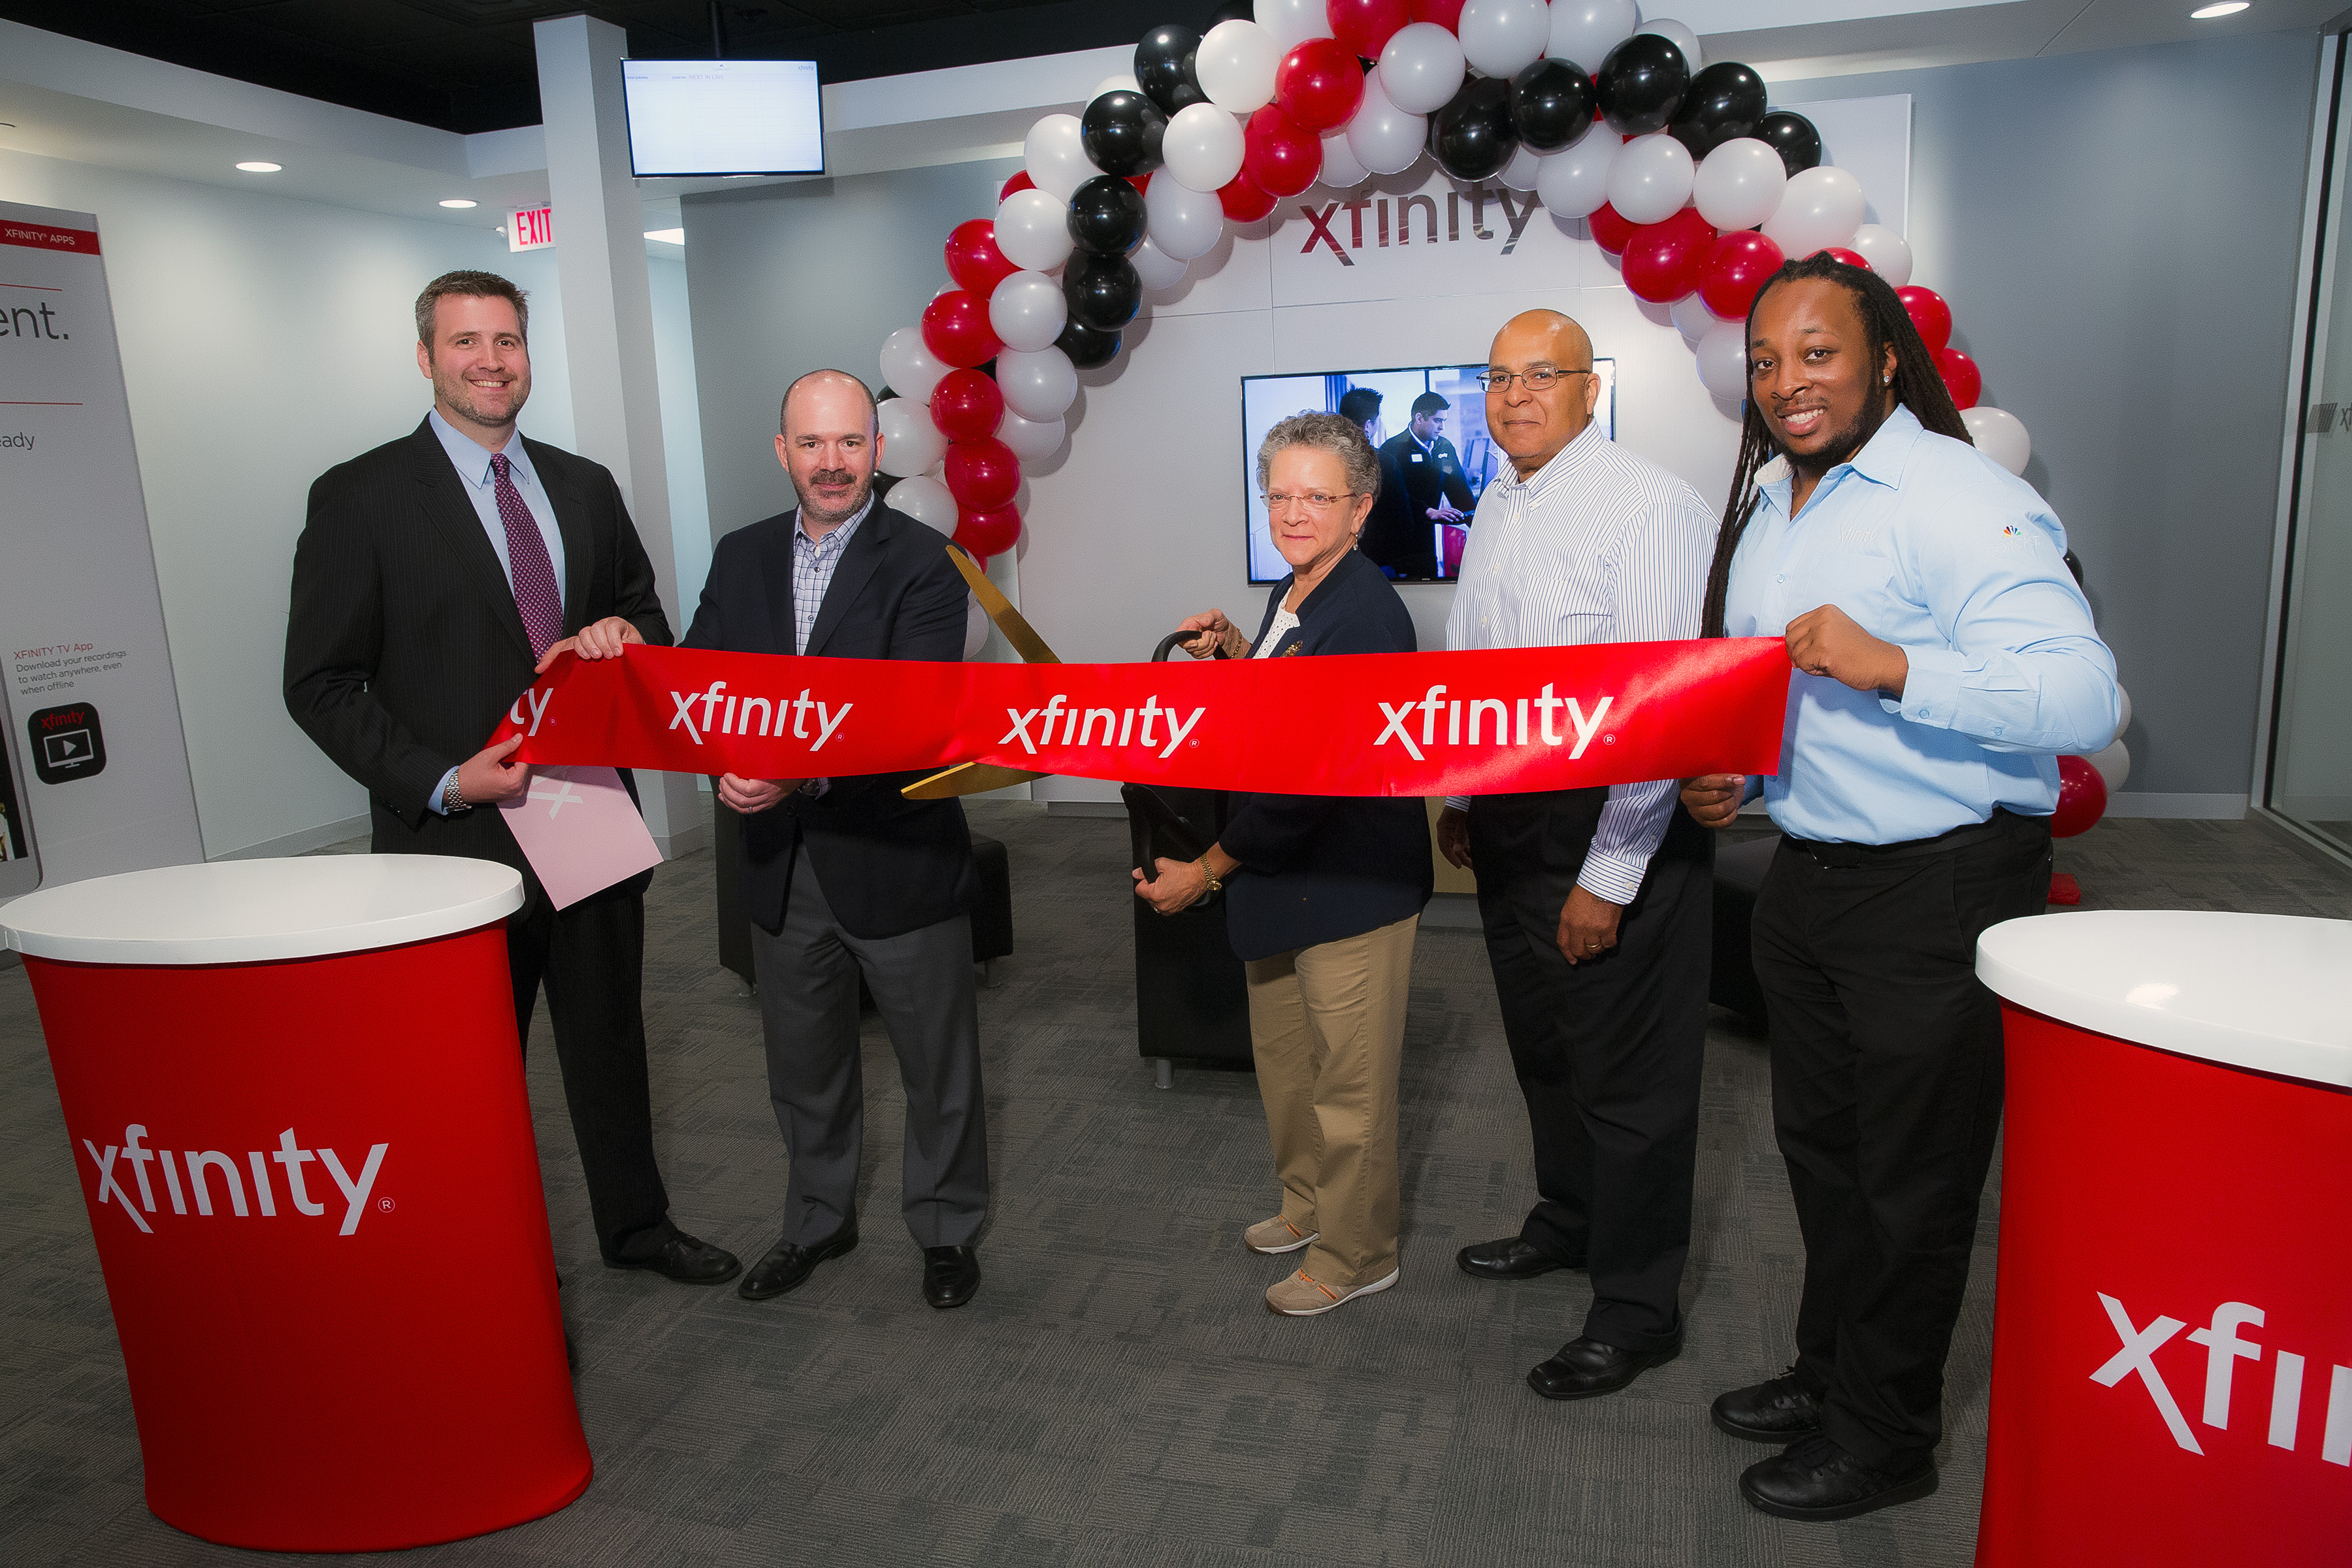 Comcast Market Manager Brian Paciorek, Comcast Director of Retail Sales & Marketing Mark Dionne, New Jersey Assemblywoman Mila Jasey, Comcast Senior Director of Government Affairs Charles Smith, Comcast West Orange Xfinity Store Manager Jason Gathright